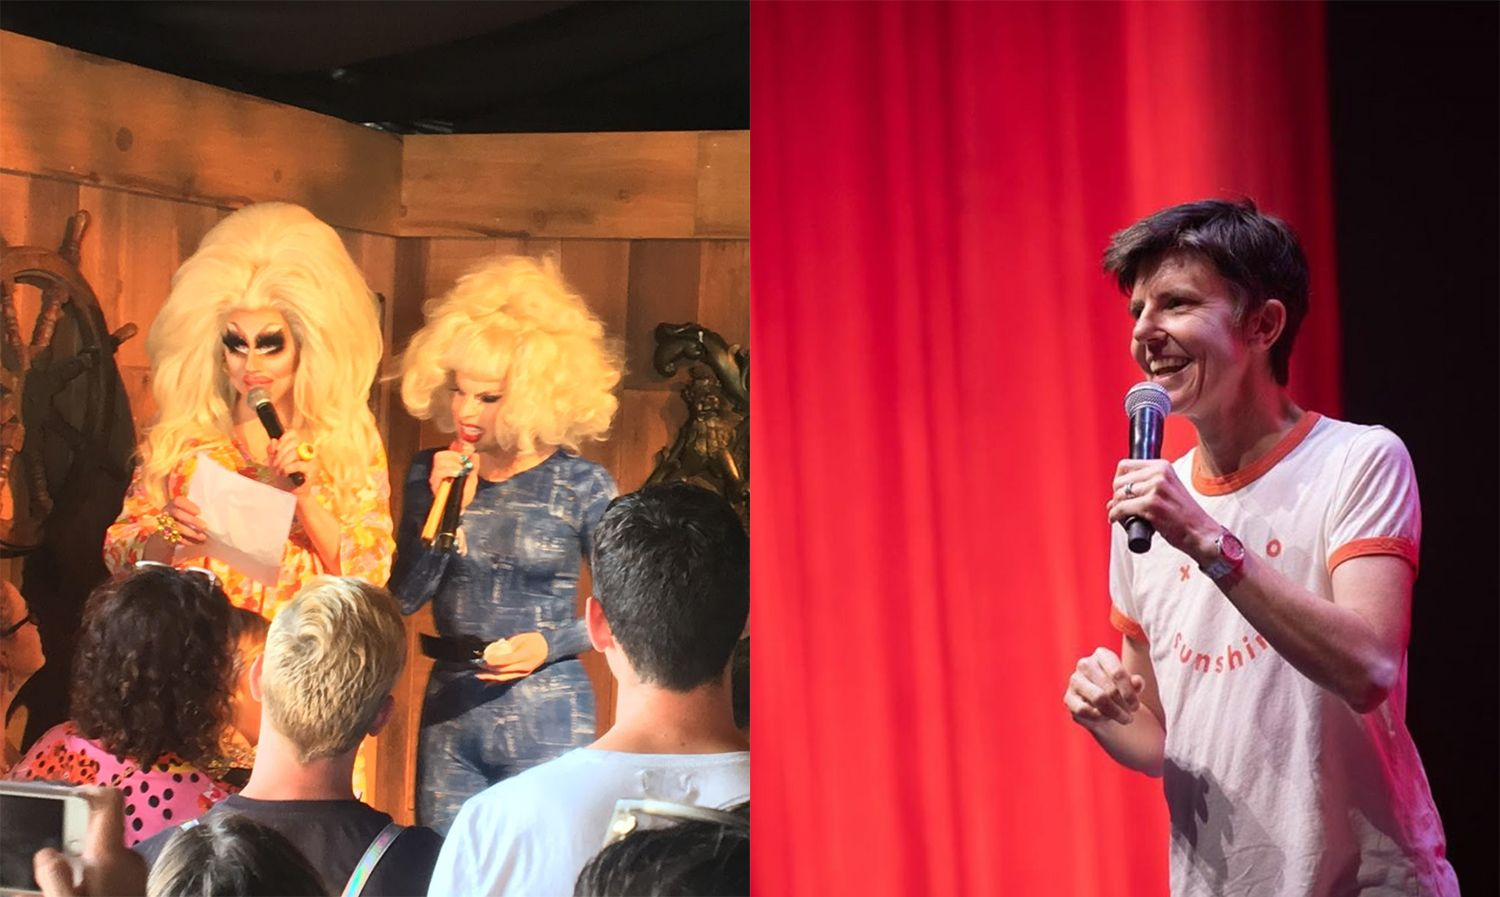 Leslie Jones Slays, Tig Notaro Delights, Trixie & Katya Return, and More From Clusterfest Day 3